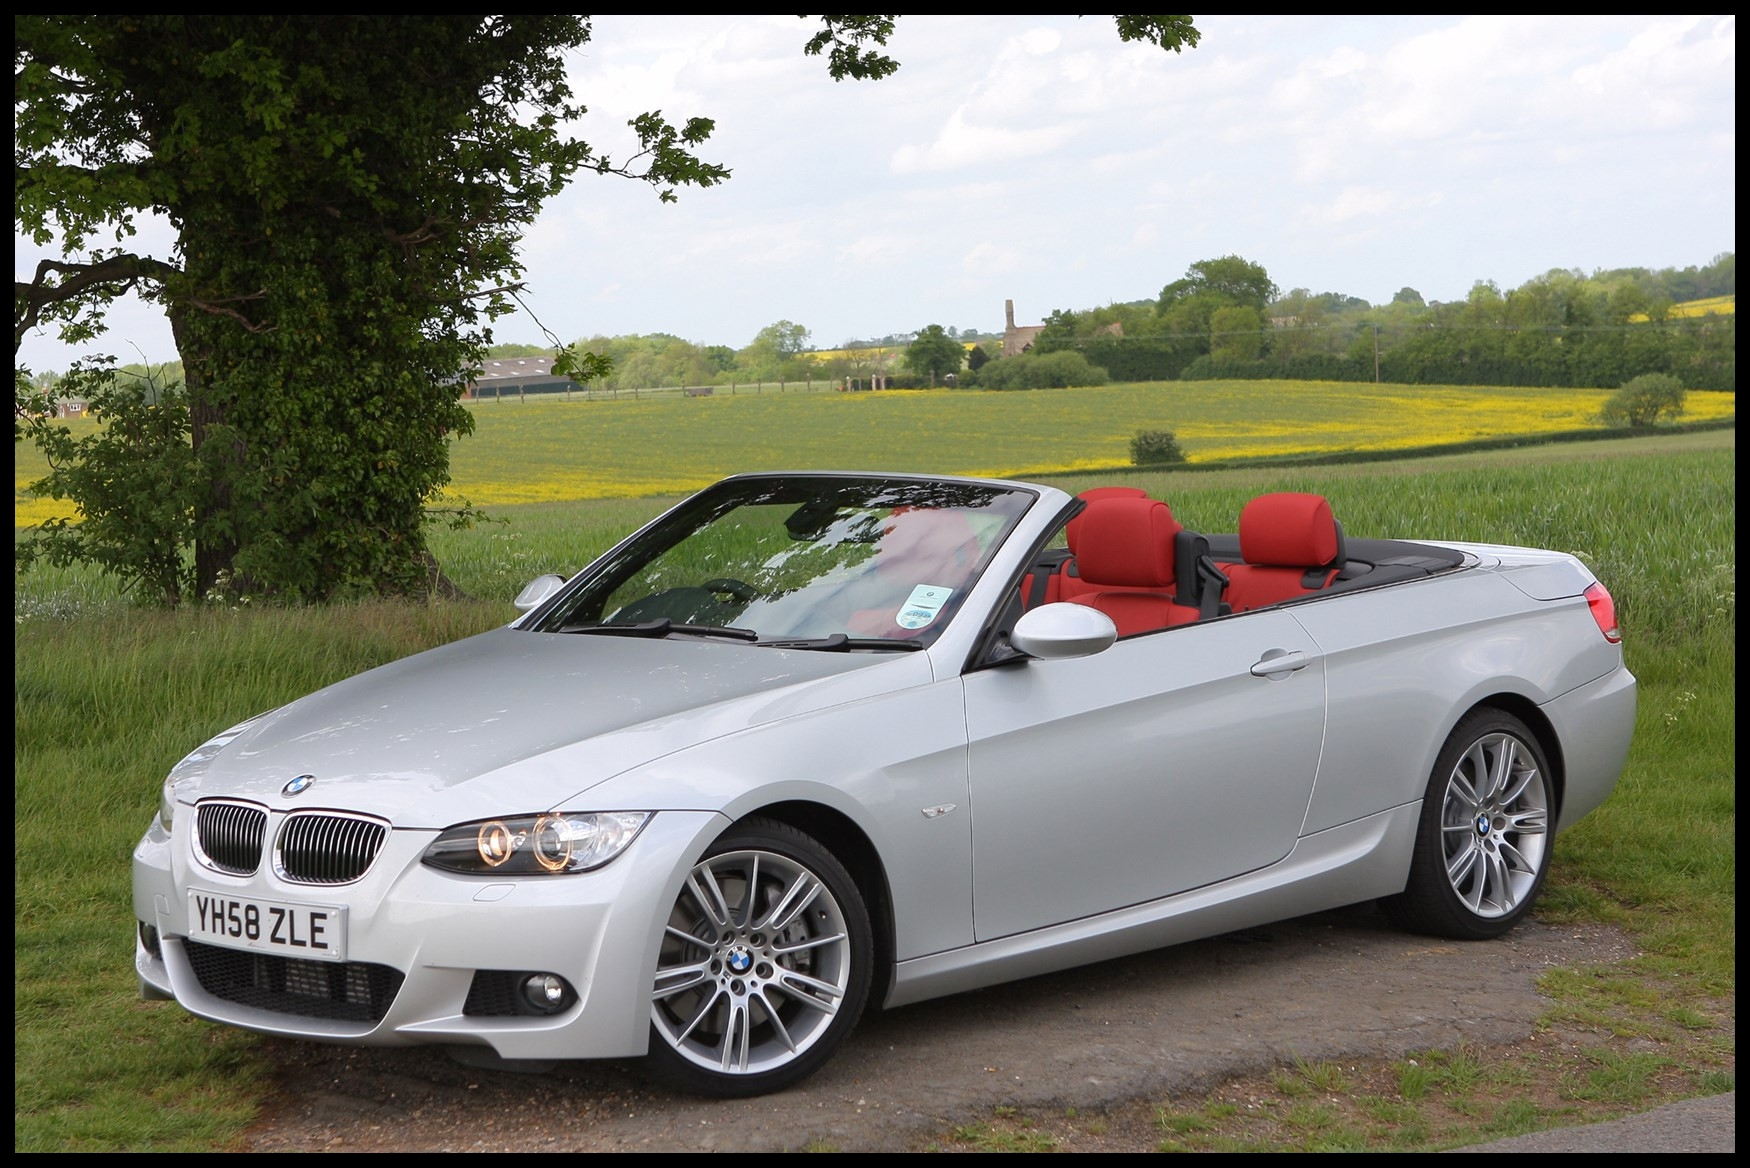 2001 Bmw 325ci Convertible Review Awesome Bmw 3 Series Convertible Review 2007 2013